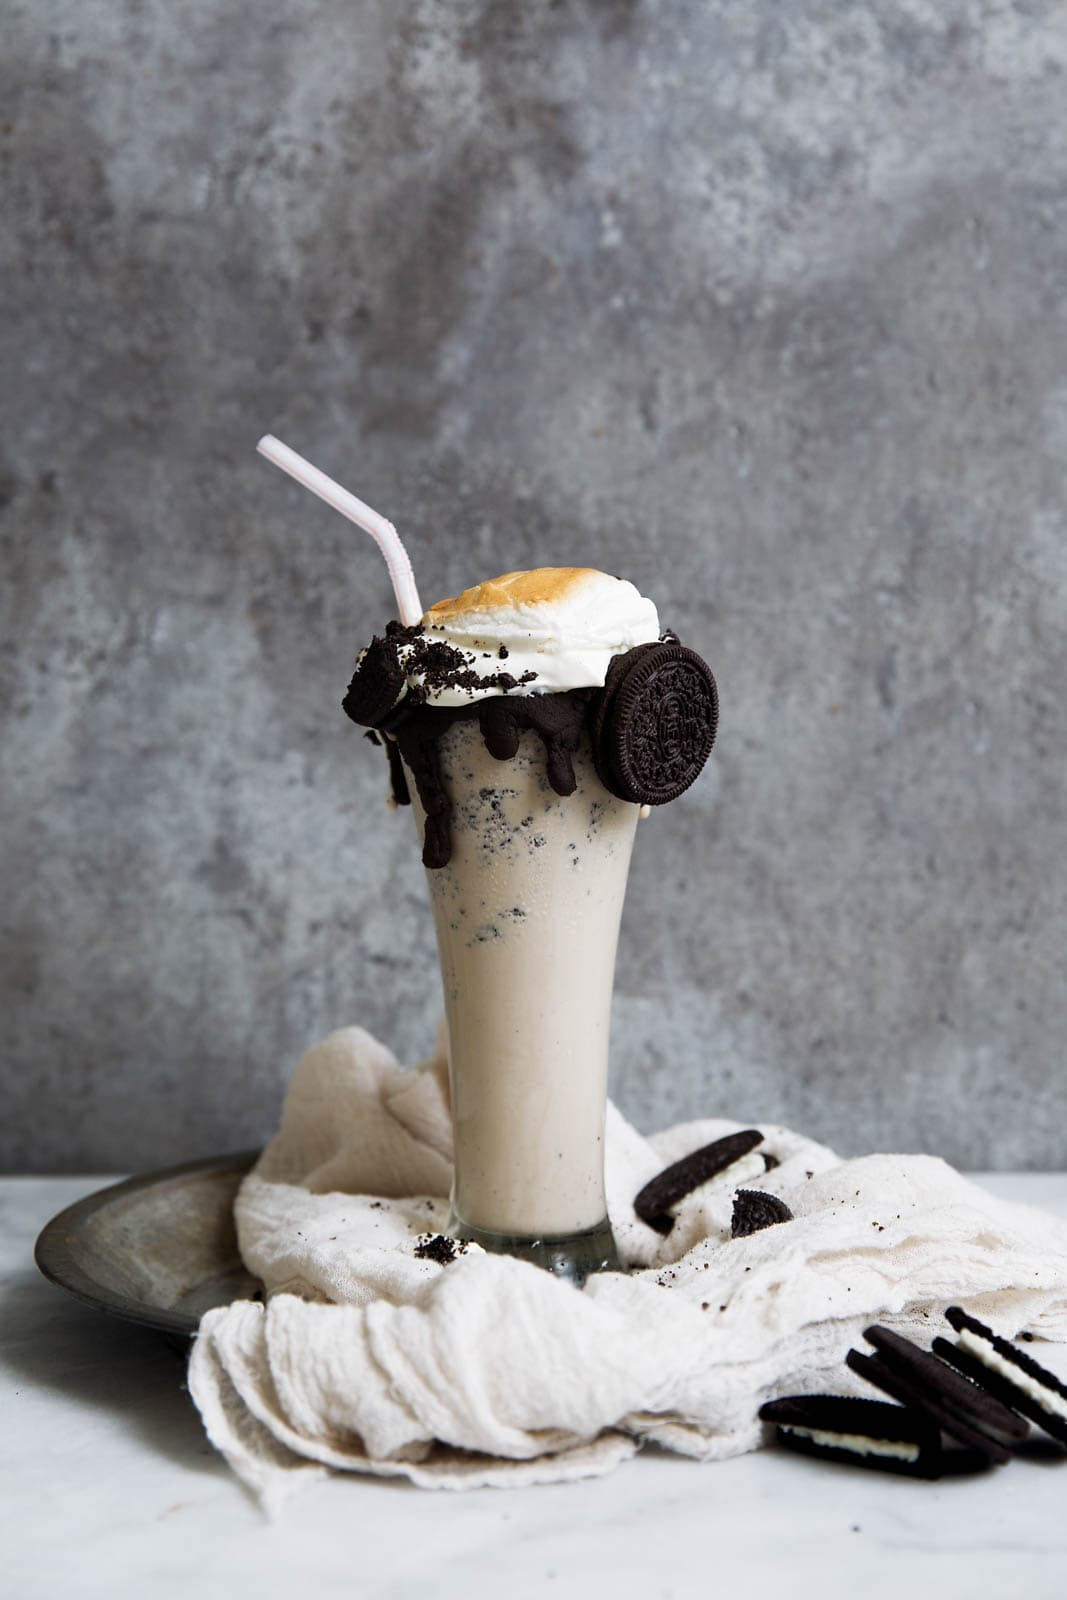 The ultimate Iced Coffee Cookies and Cream Milkshake, complete with chocolate sauce, whipped cream, and a giant toasted marshmallow